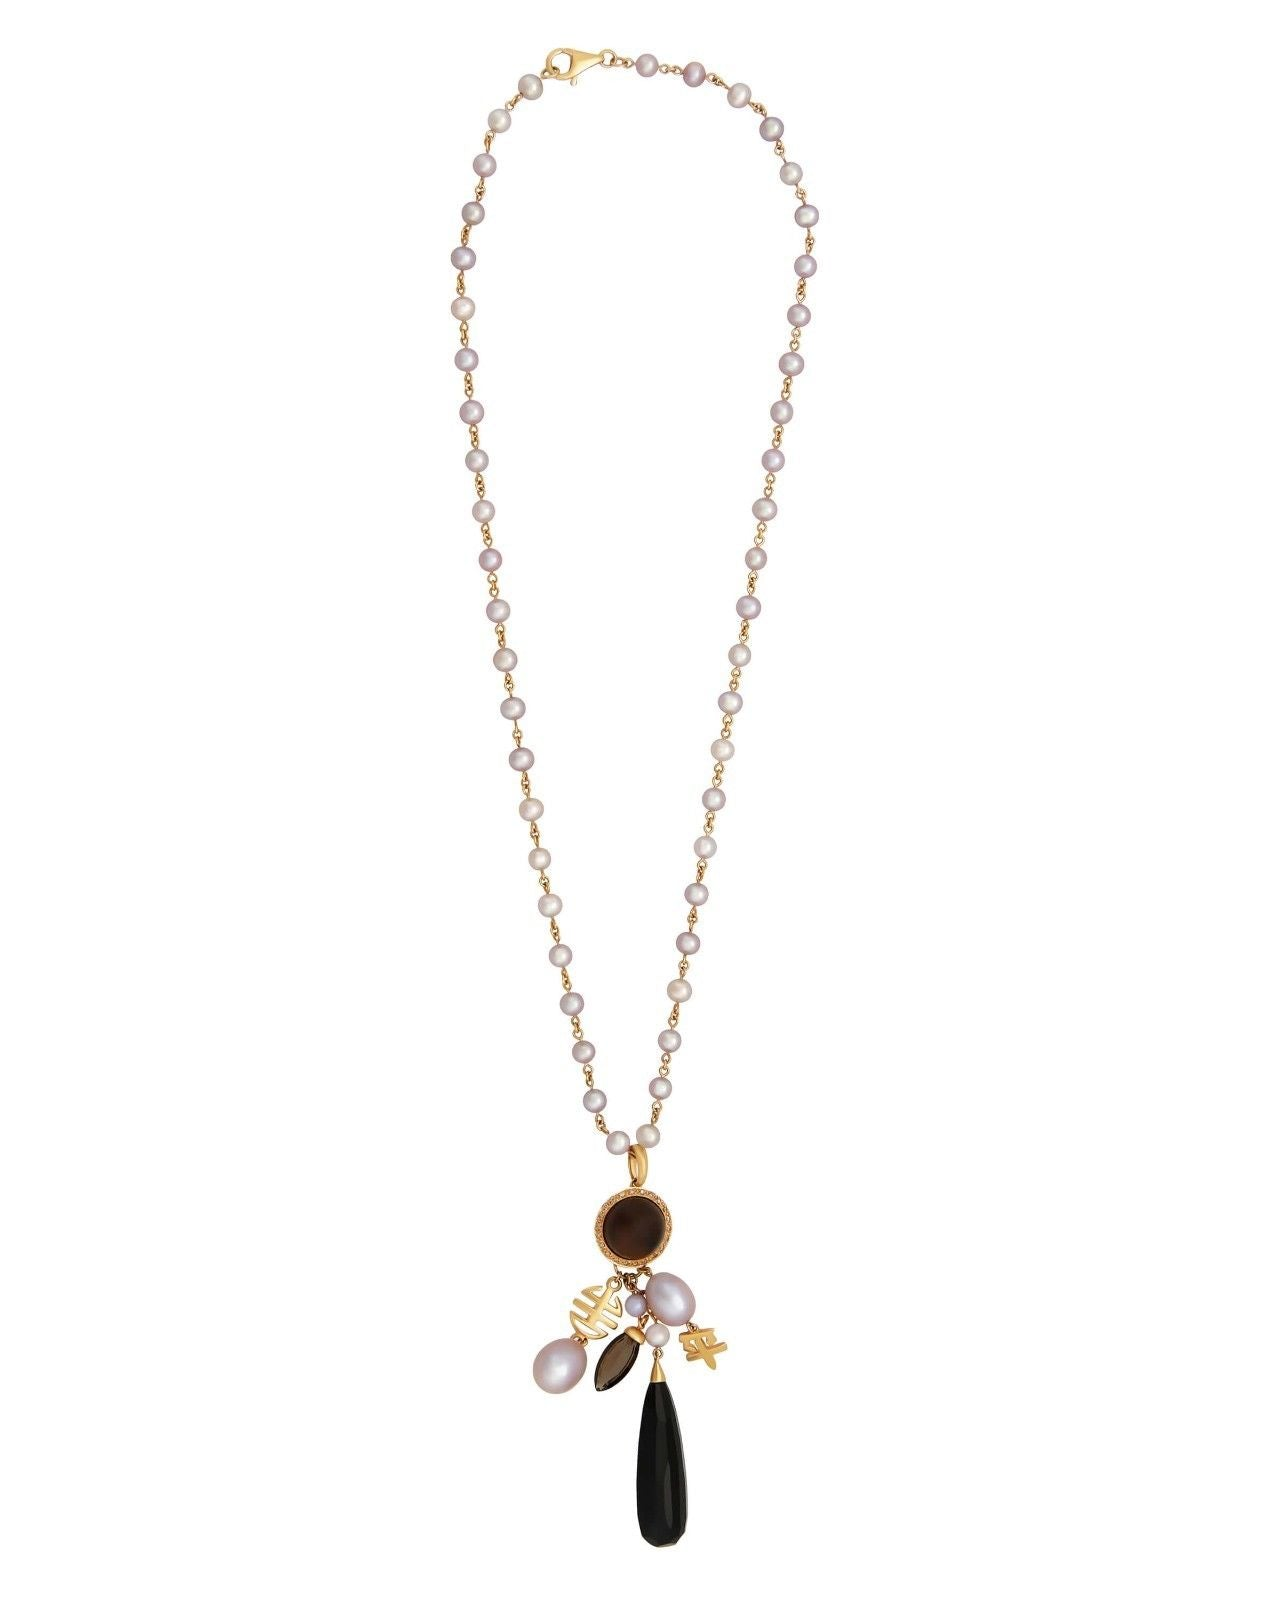 Mimi Milano Necklace In 18K Rose Gold, Black Agate, Smoky Quartz, Pearls C165RF3OM